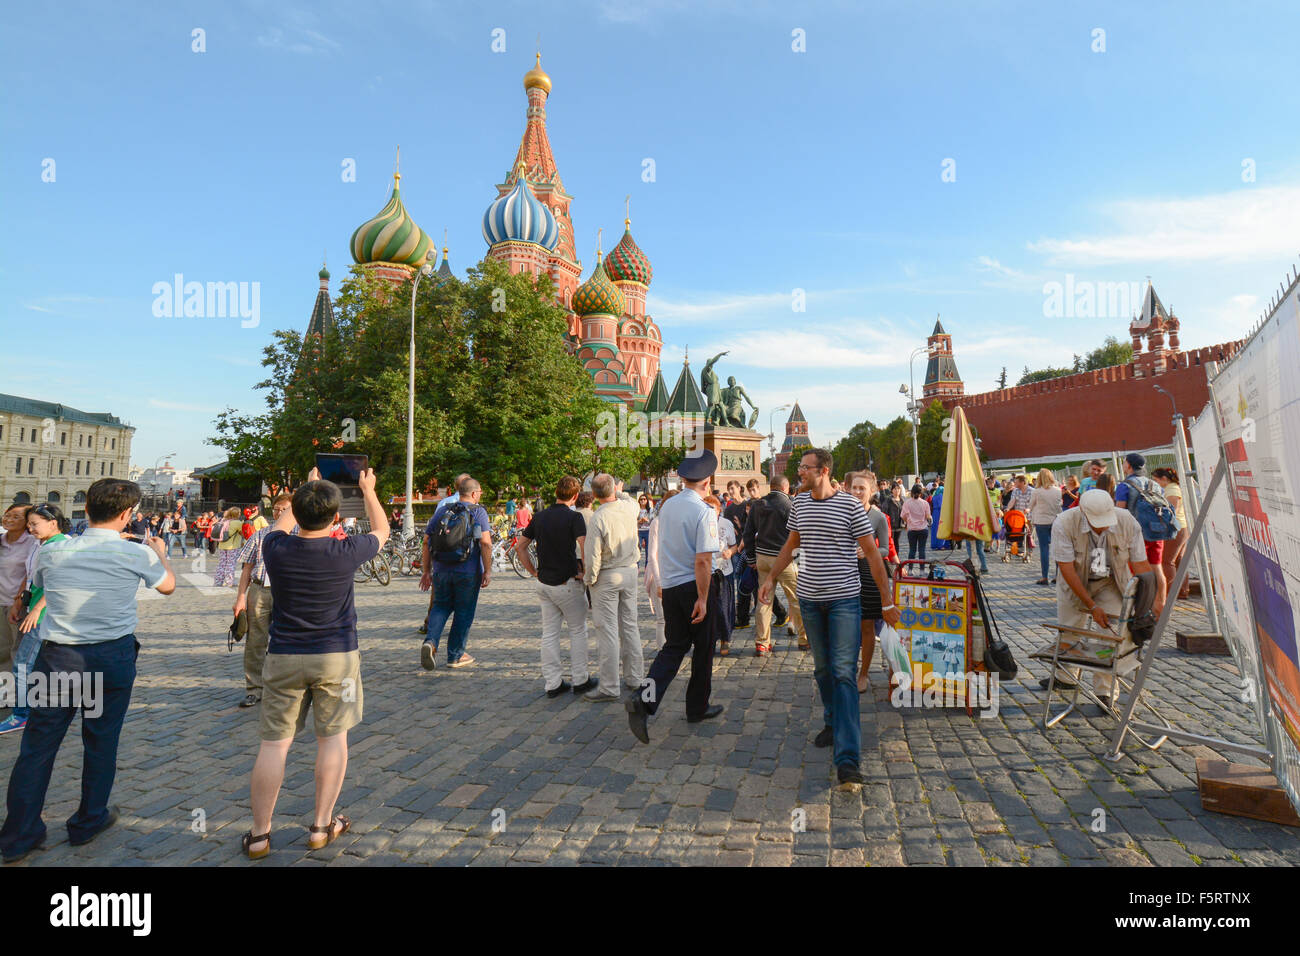 tourists outside St Basil's Cathedral, Red Square, Moscow, Russia - Stock Image